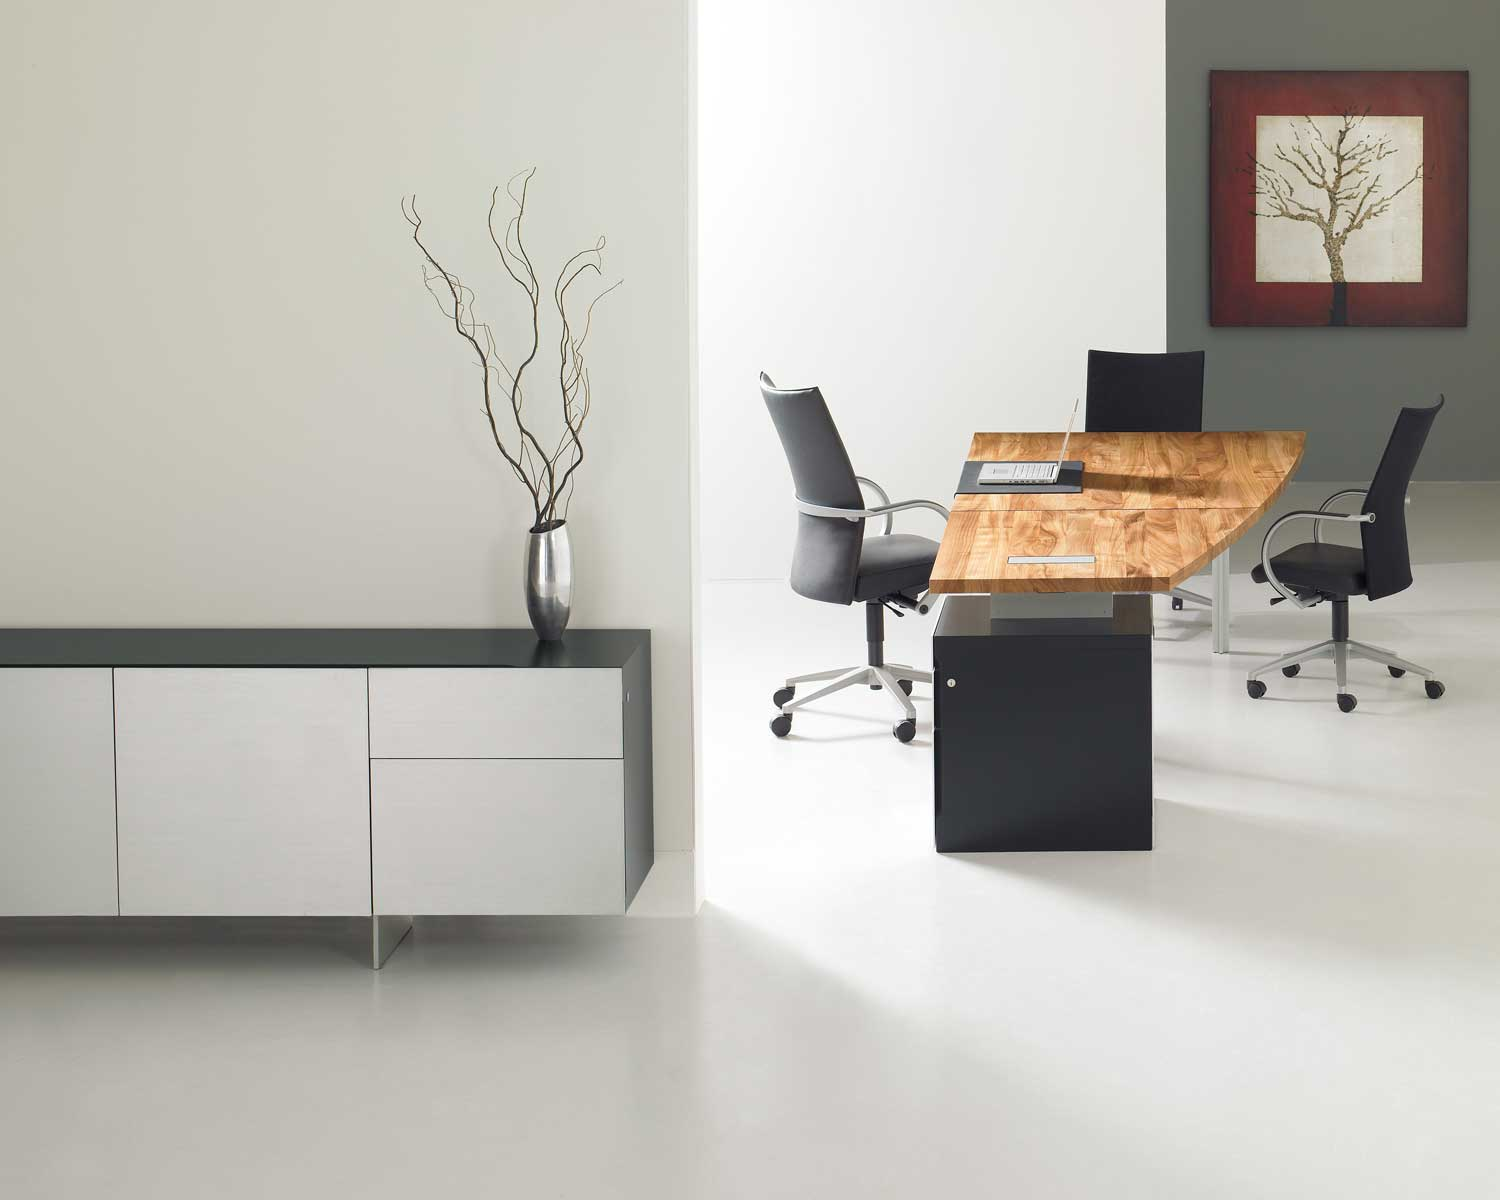 Acoustic Furniture: More Privacy, Less Noise